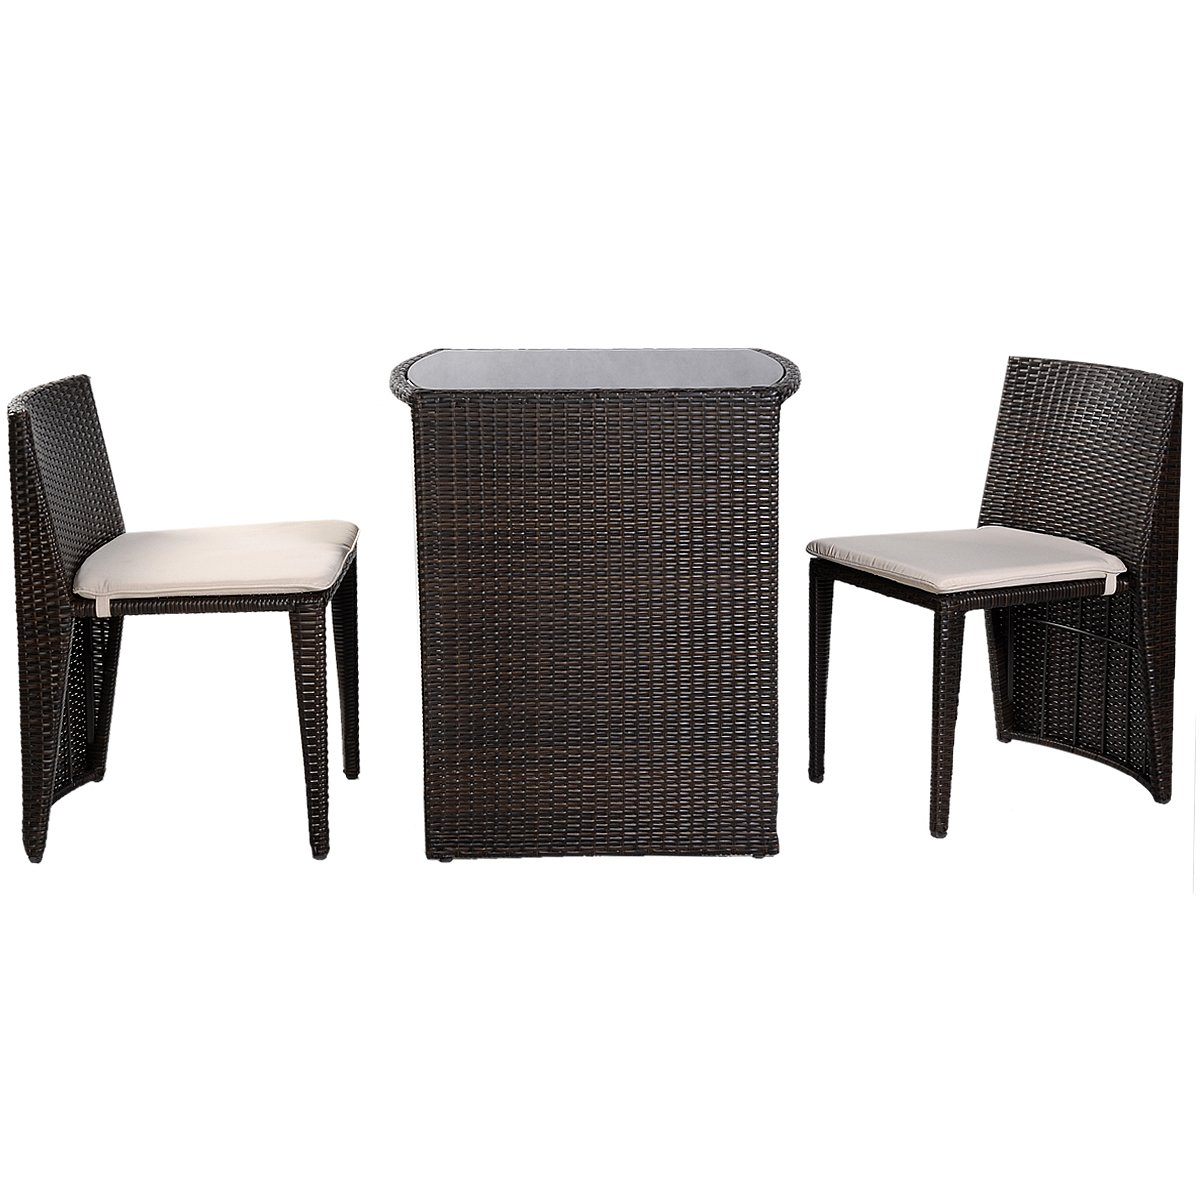 gartenm bel rattan set lounge set polyrattan sitzgruppe rattanm bel garnitur garten online kaufen. Black Bedroom Furniture Sets. Home Design Ideas